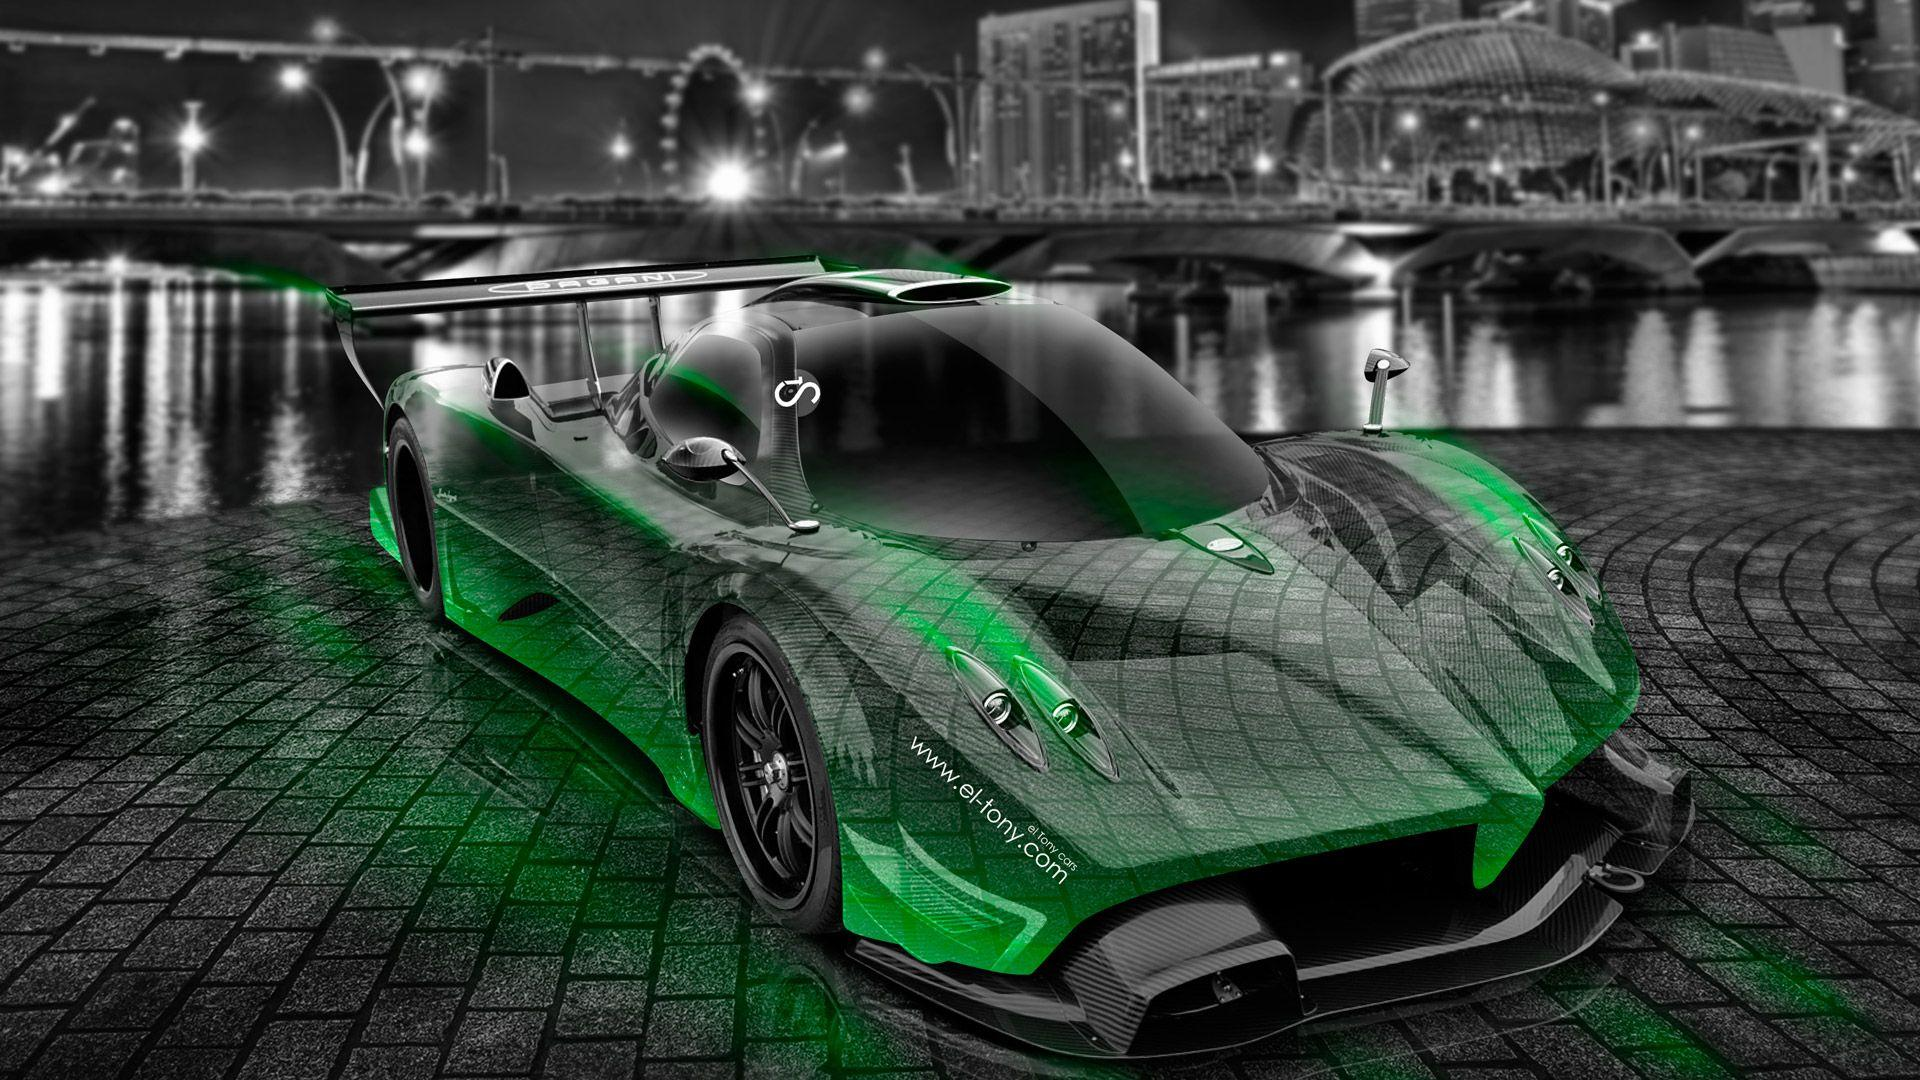 Pagani Zonda R Crystal City Car 2014 | El Tony